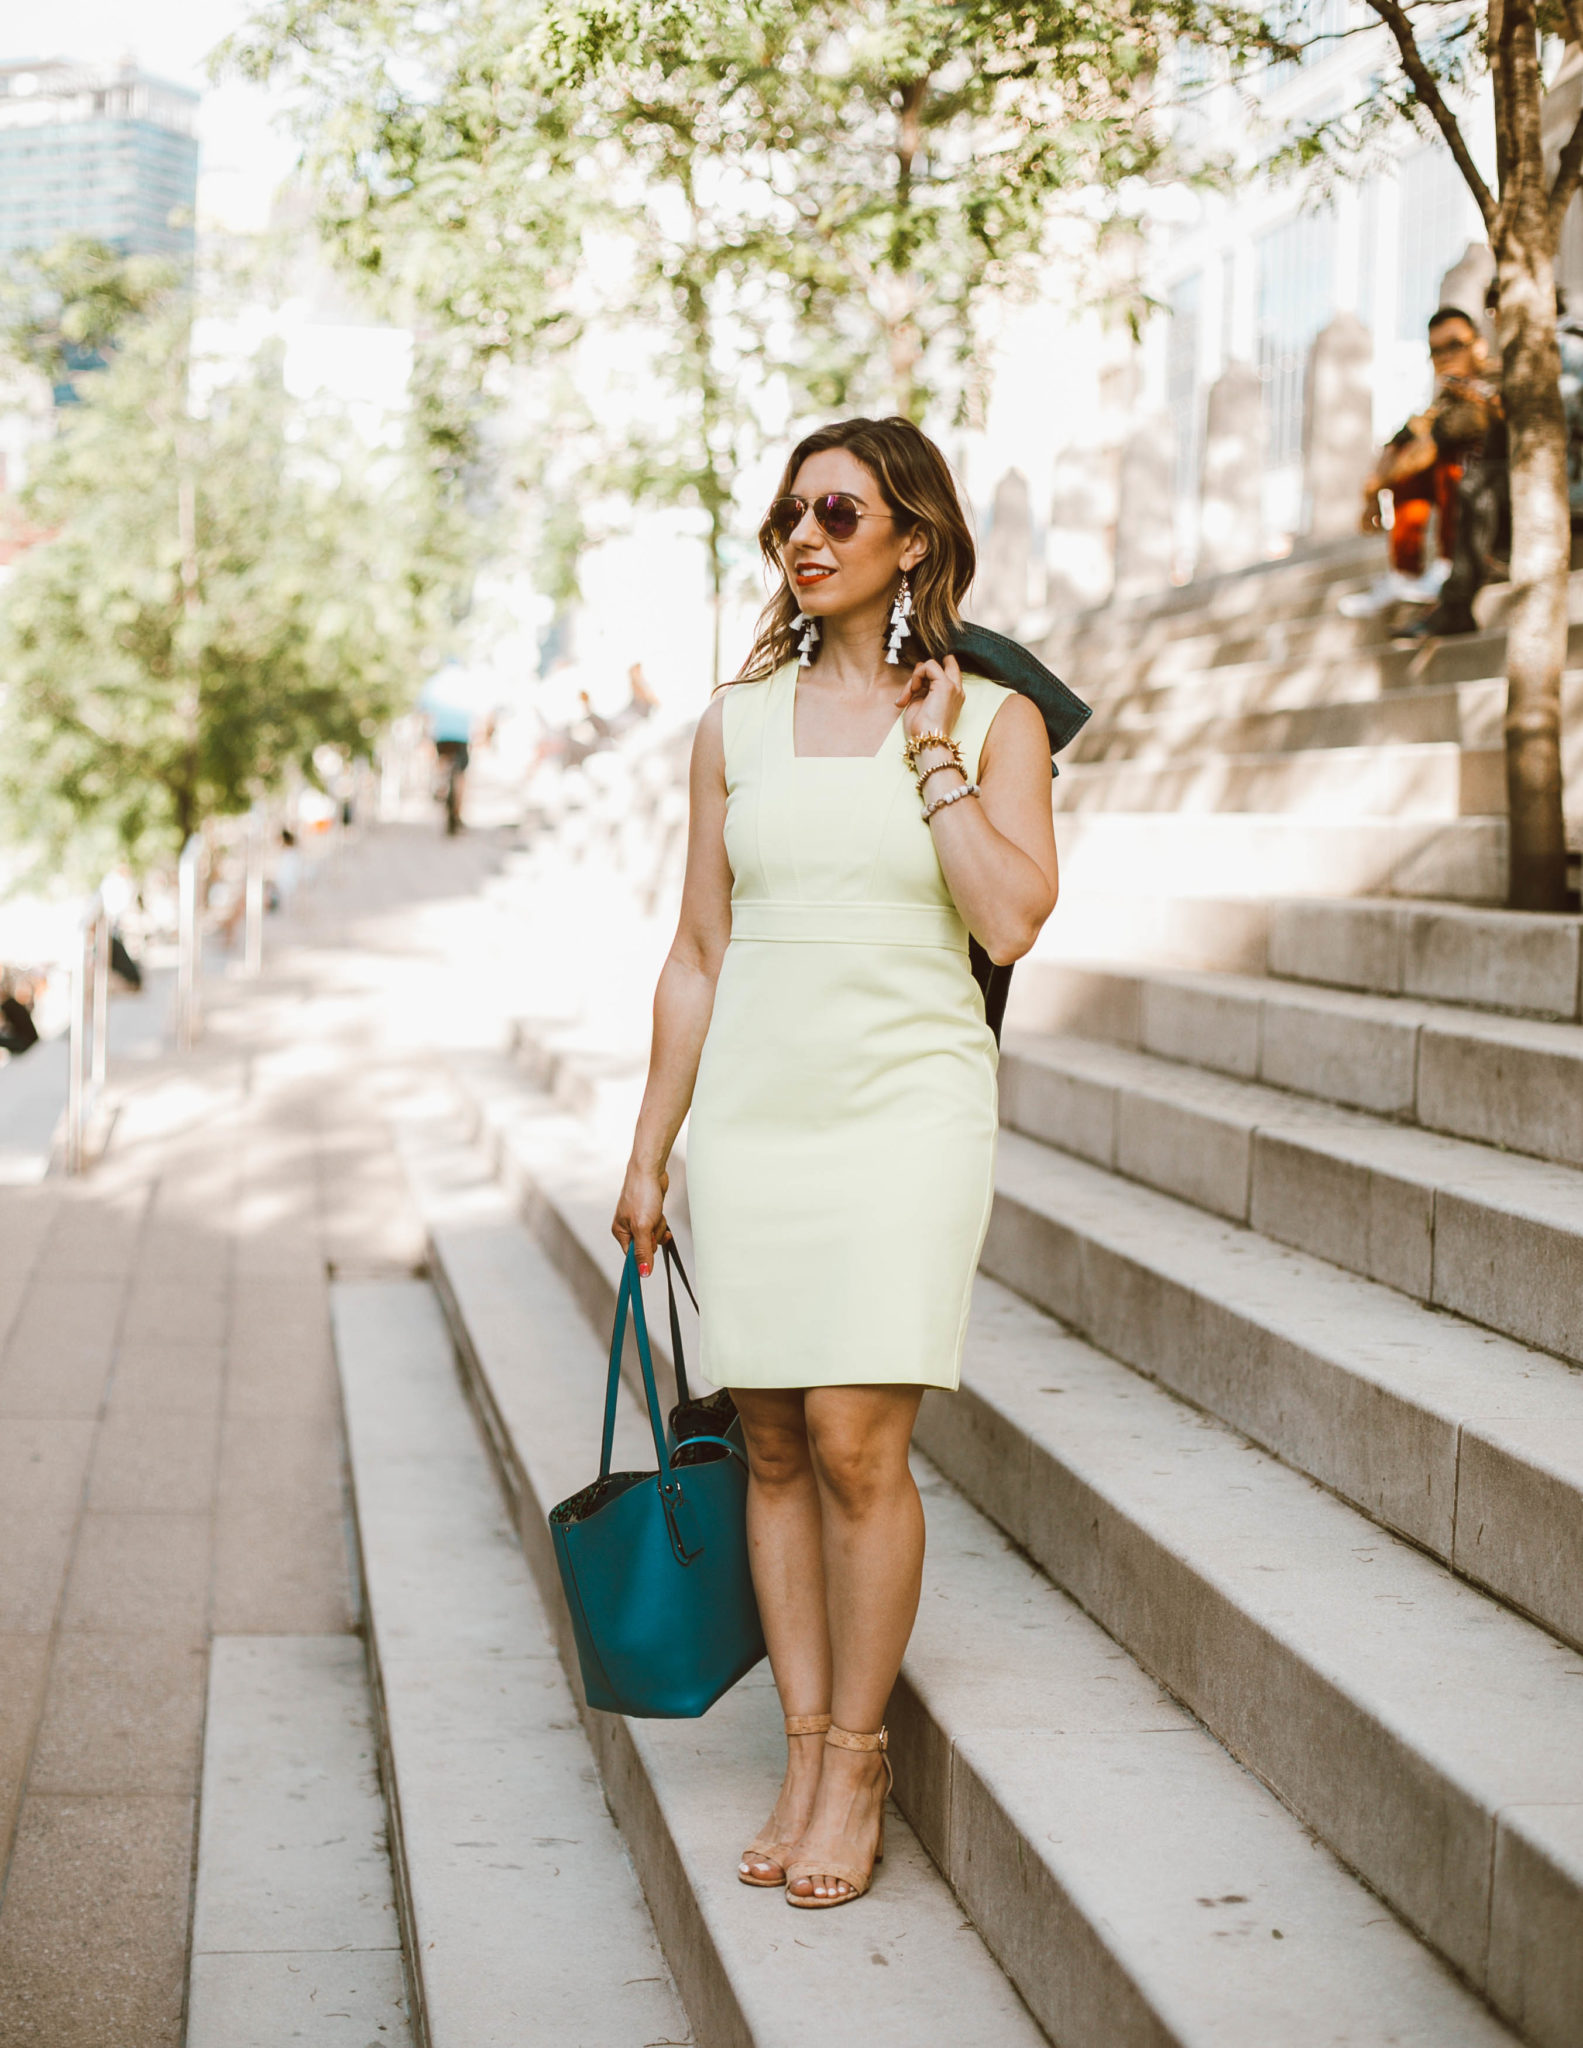 The V Neck Sheath Dress I Didn't Bring To Vegas & On Mondays We Link Up (#71) featured by popular Chicago fashion blogger Glass of Glam